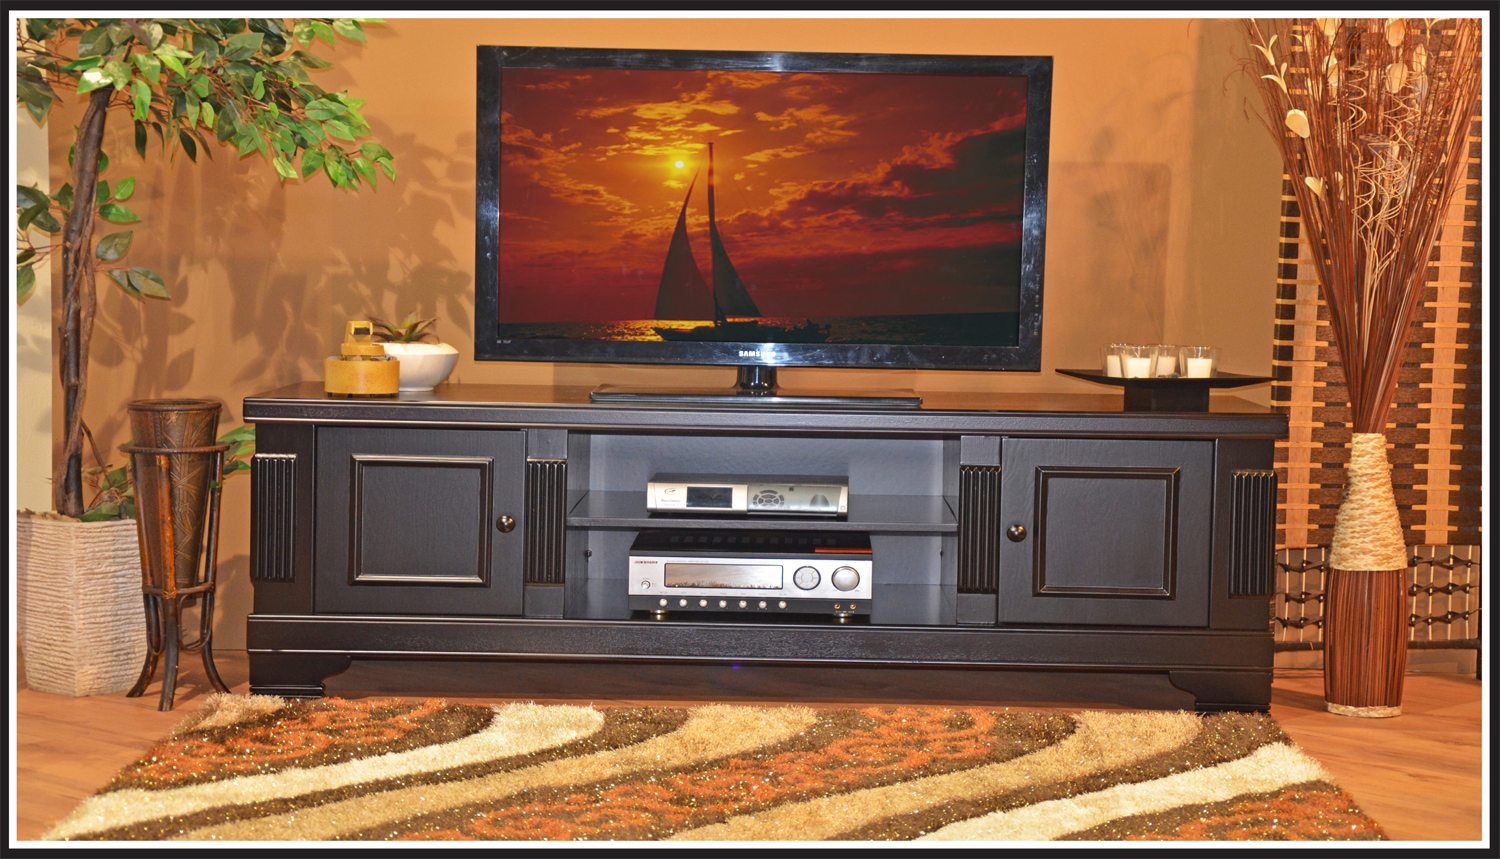 Tiffany plasma tv stand plasma stand for sale tv stand for Home decorations on sale